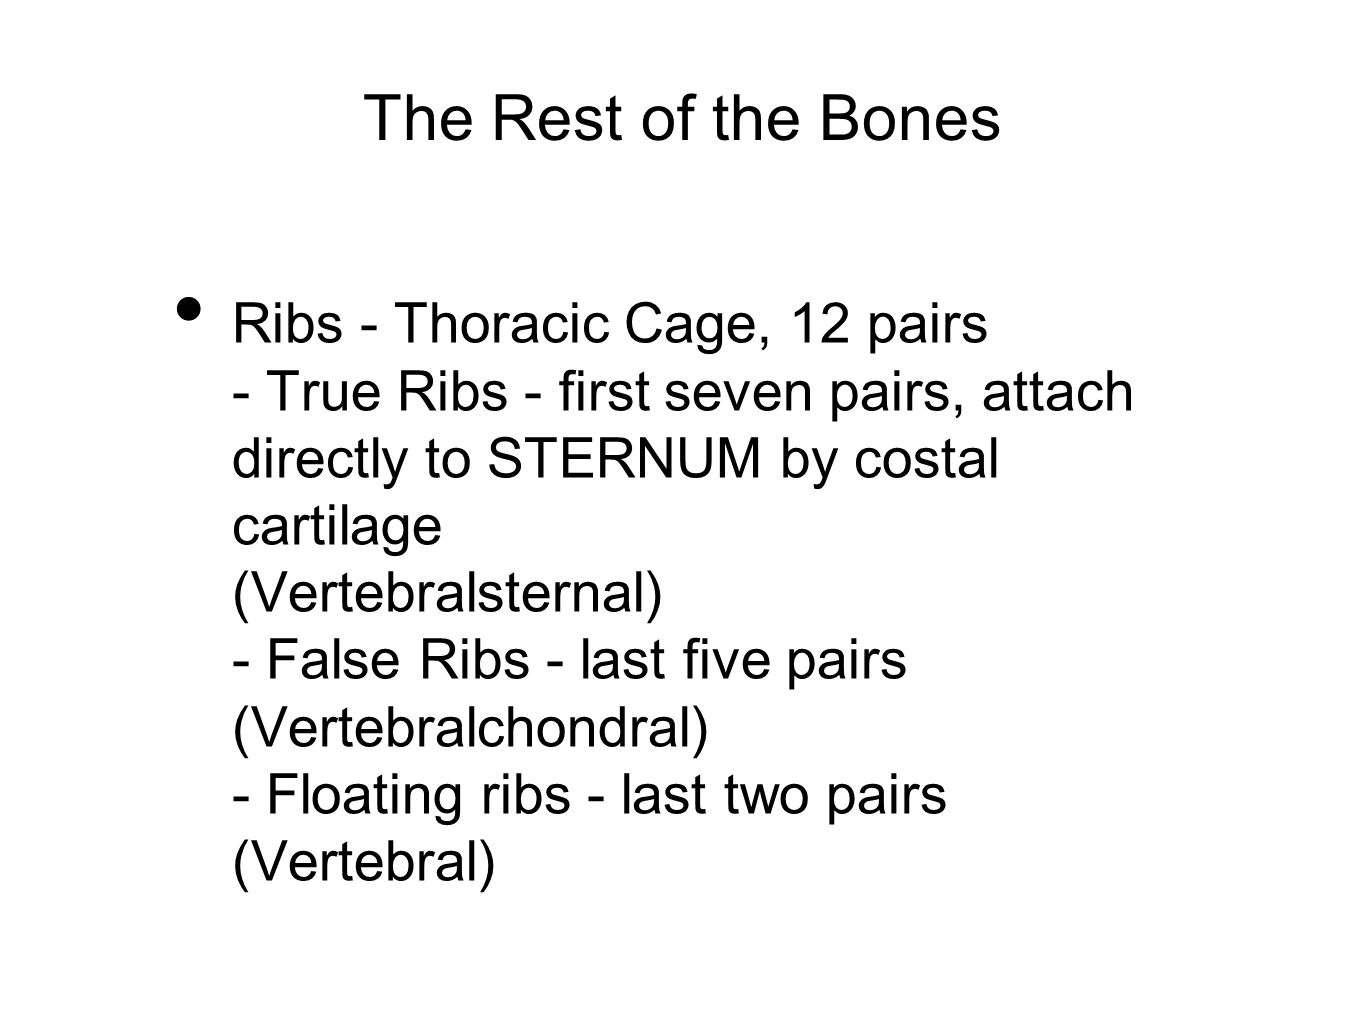 The Rest of the Bones Ribs - Thoracic Cage, 12 pairs - True Ribs - first seven pairs, attach directly to STERNUM by costal cartilage (Vertebralsternal